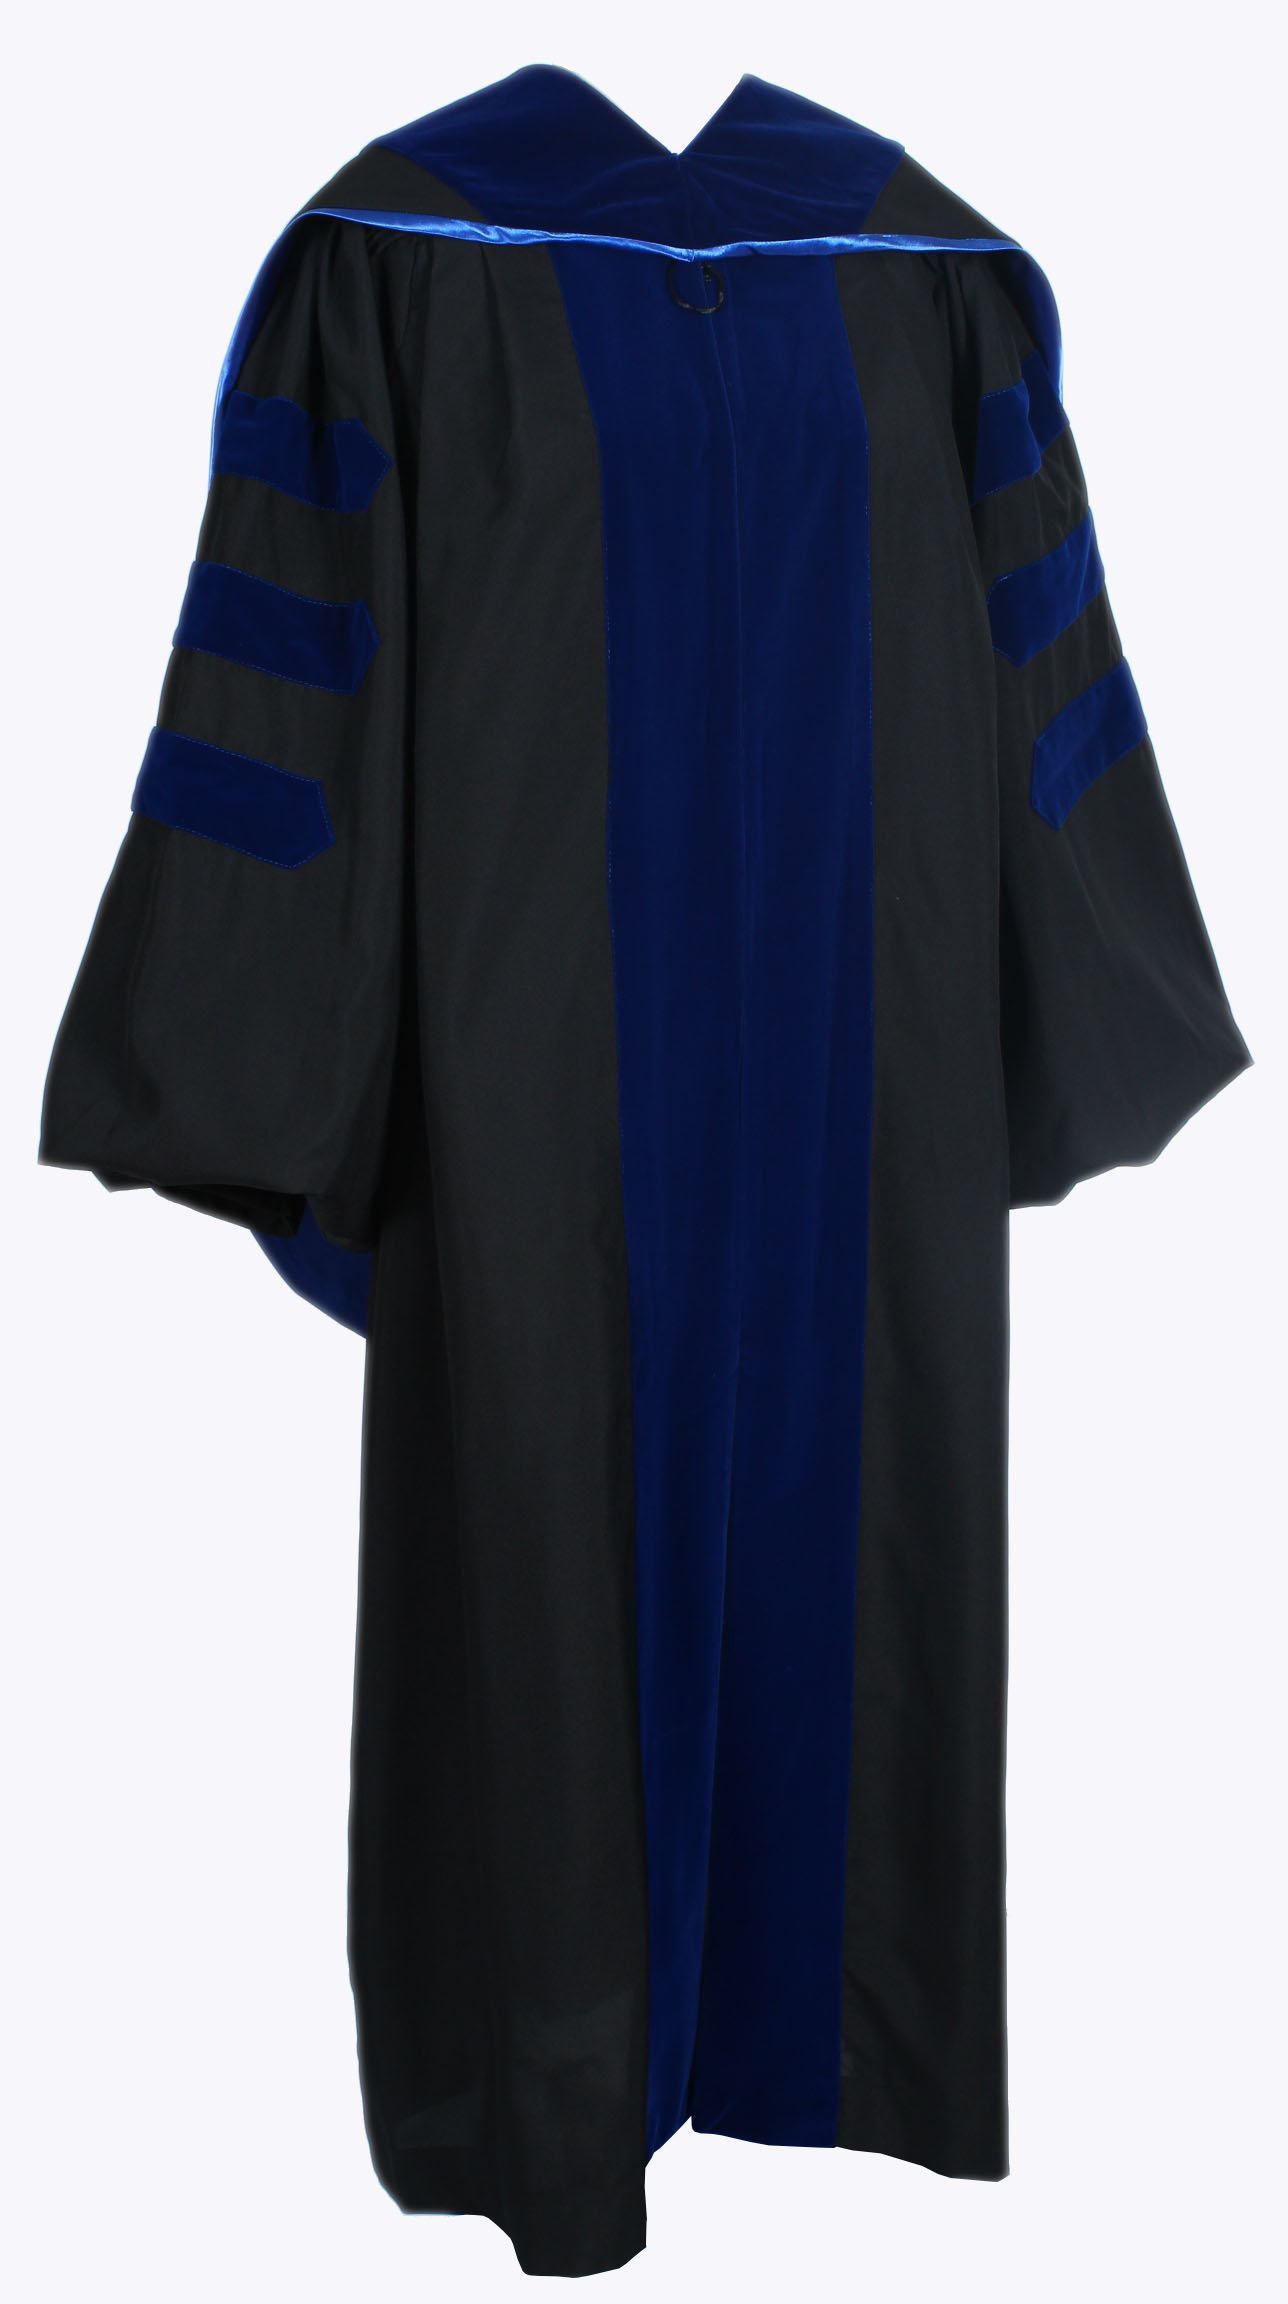 GraduationForYou Deluxe Classic Doctoral Graduation Gown and Hood Package Unisex Phd Gown